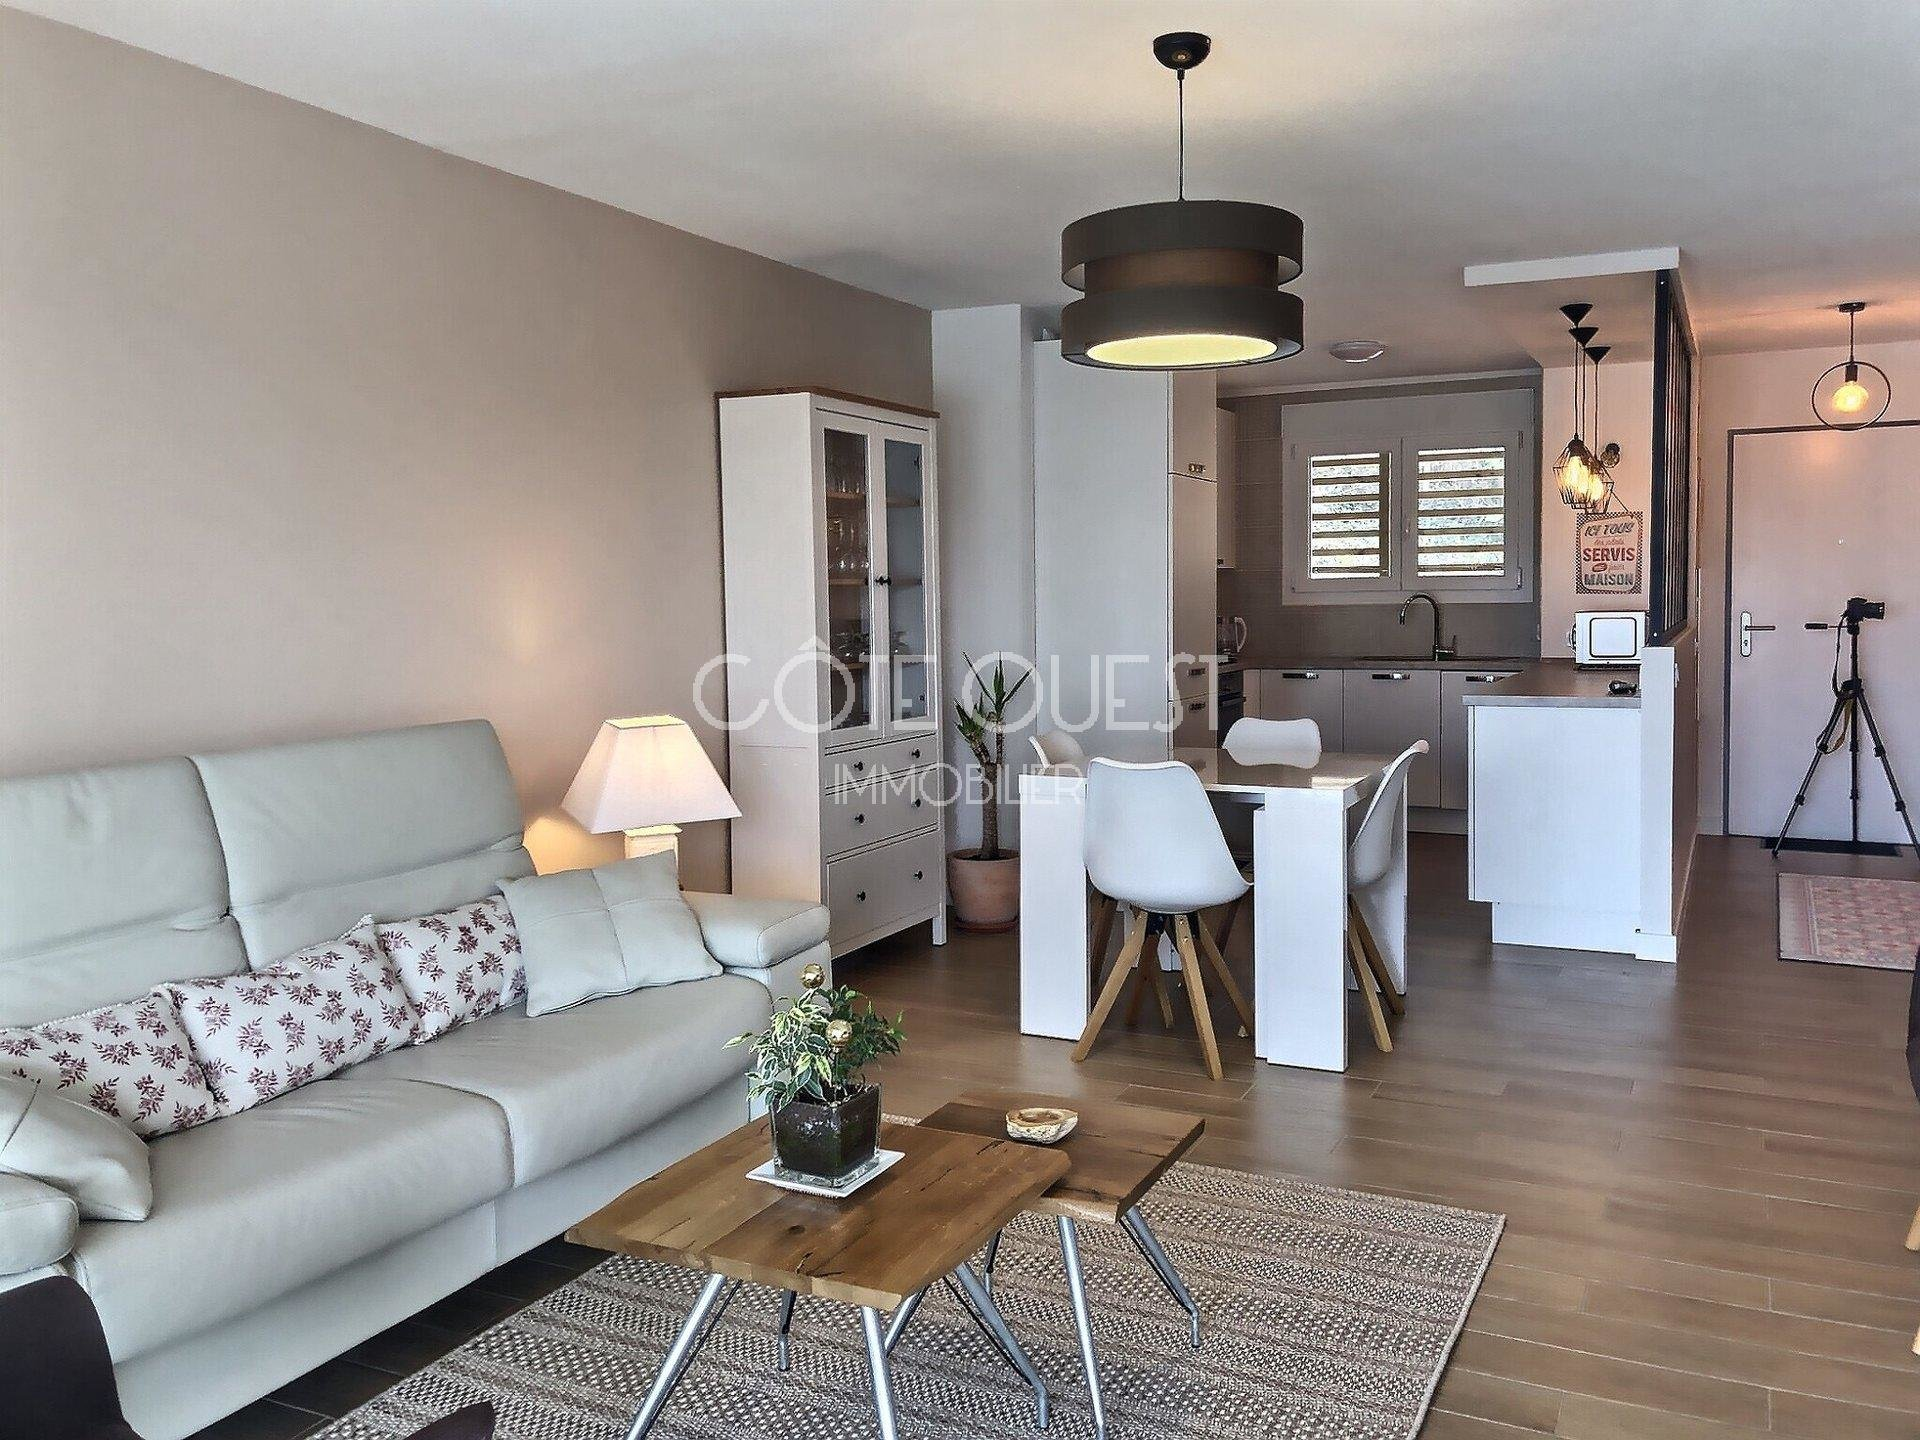 SAINT JEAN DE LUZ. A 3-ROOM APARTMENT WITH A TERRACE ENJOYING A MOUNTAIN VIEW